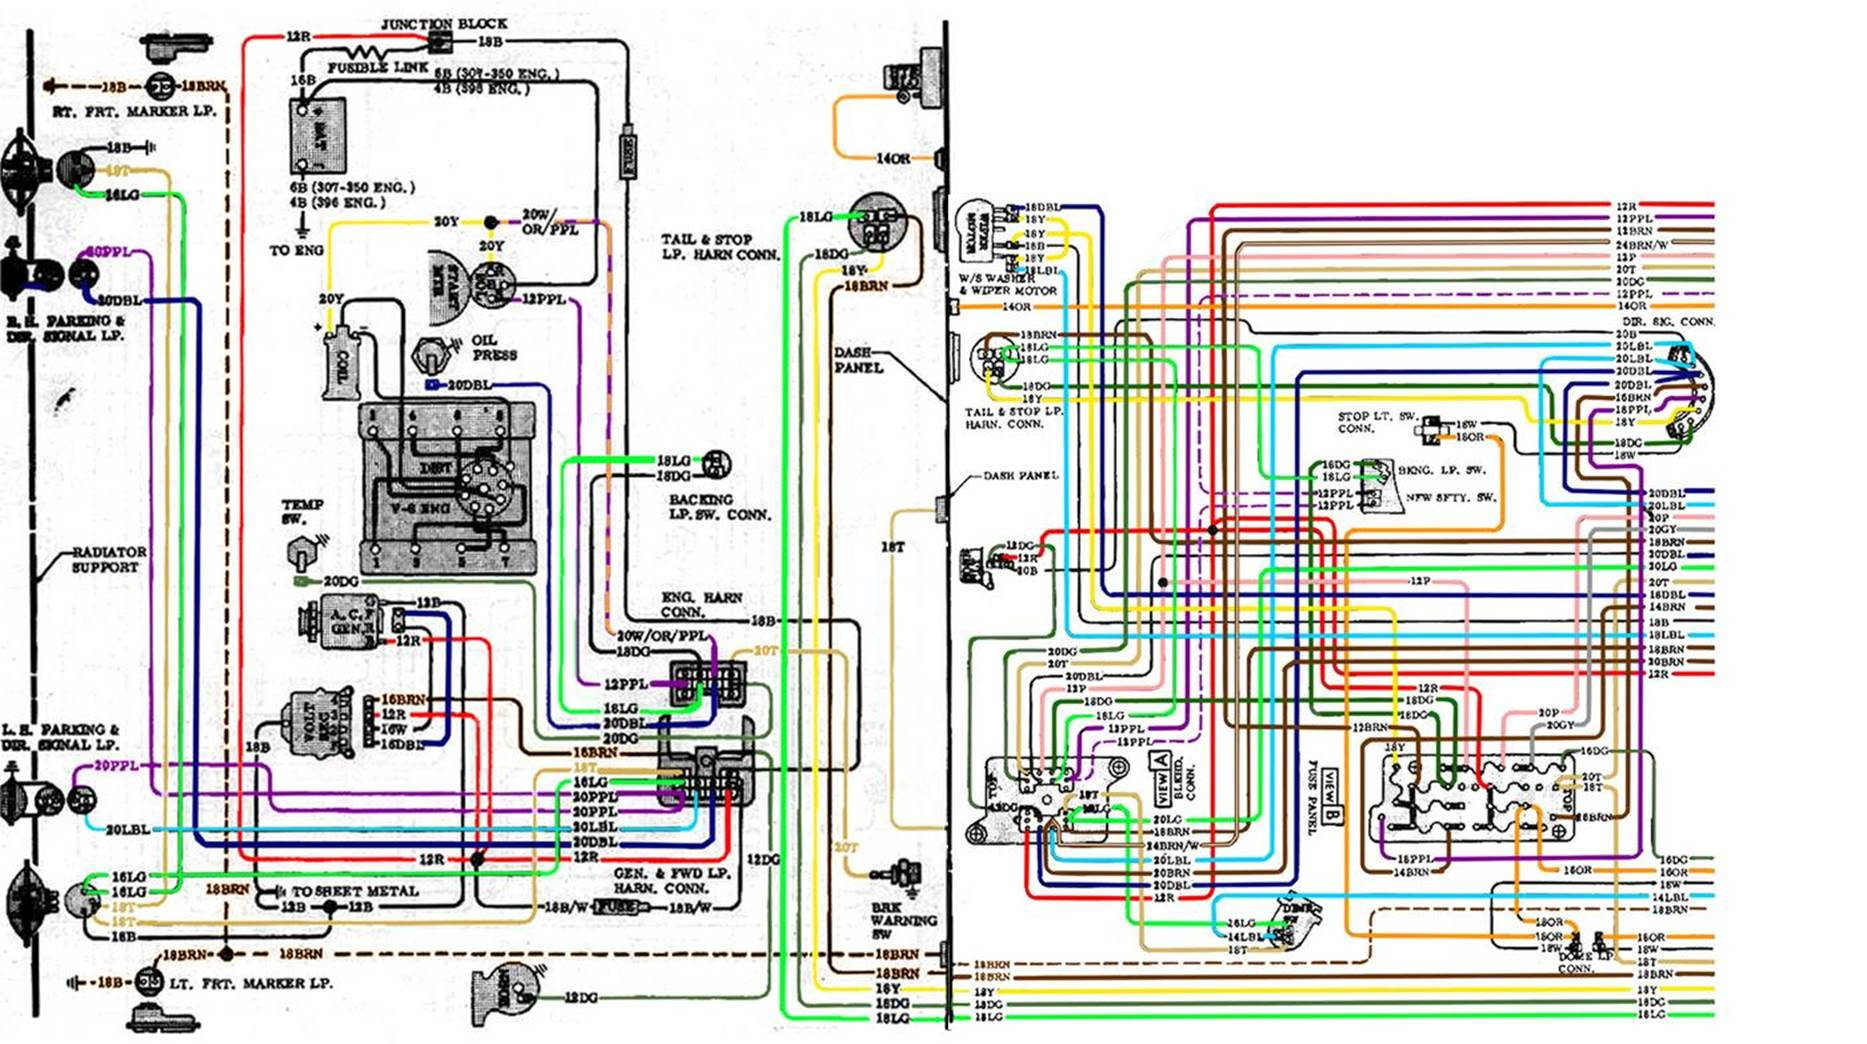 67 Camaro Engine Wiring Diagram Library 1968 Chevrolet 72 Chevy For 2010 1967 Chevelle